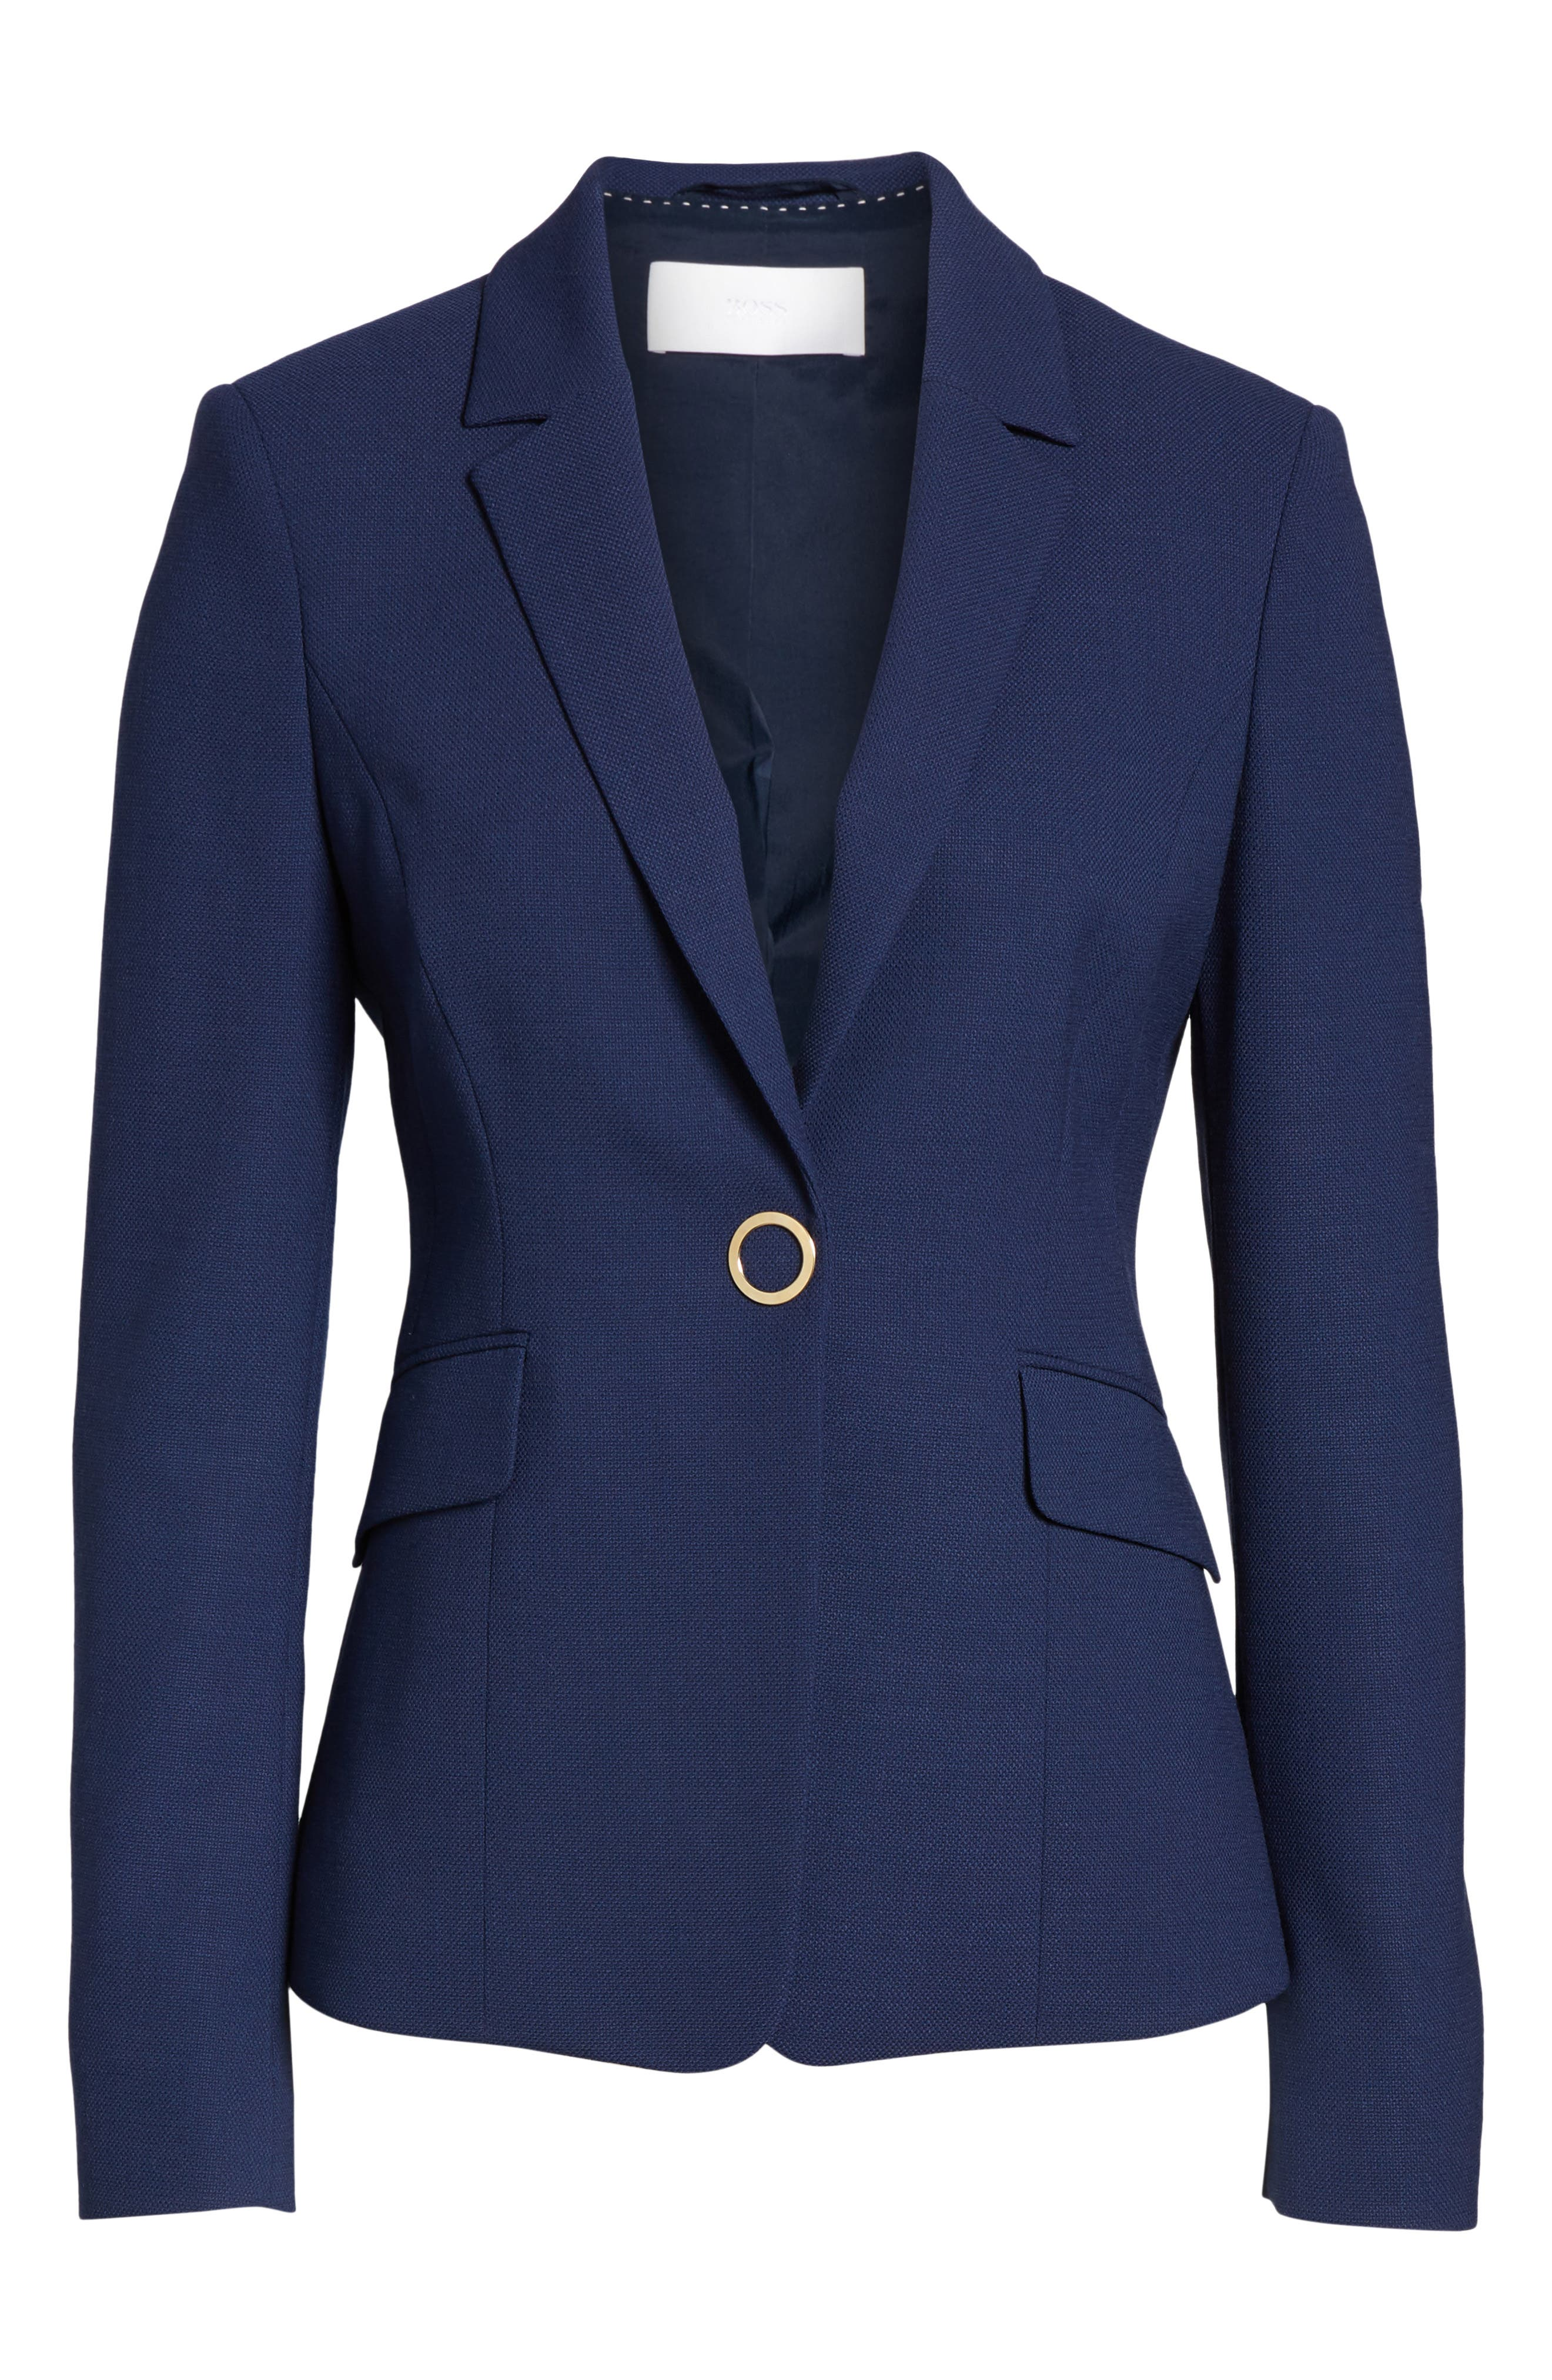 Jibalena Textured Stretch Wool Suit Jacket,                             Alternate thumbnail 7, color,                             Nautical